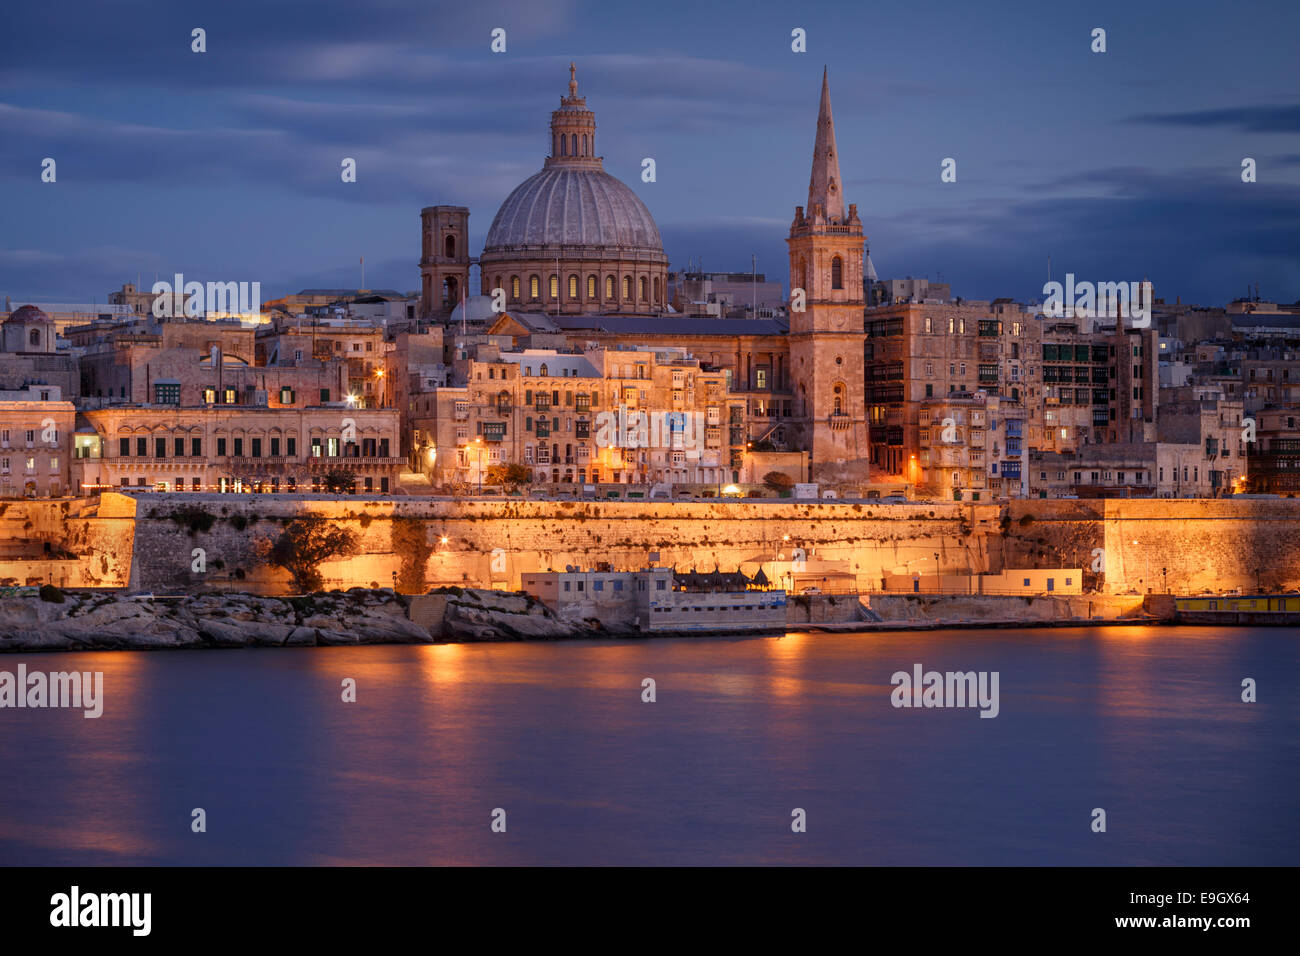 Malta, Valletta, skyline with St. Paul's Anglican Cathedral and Carmelite Church at dusk from Sliema - Stock Image